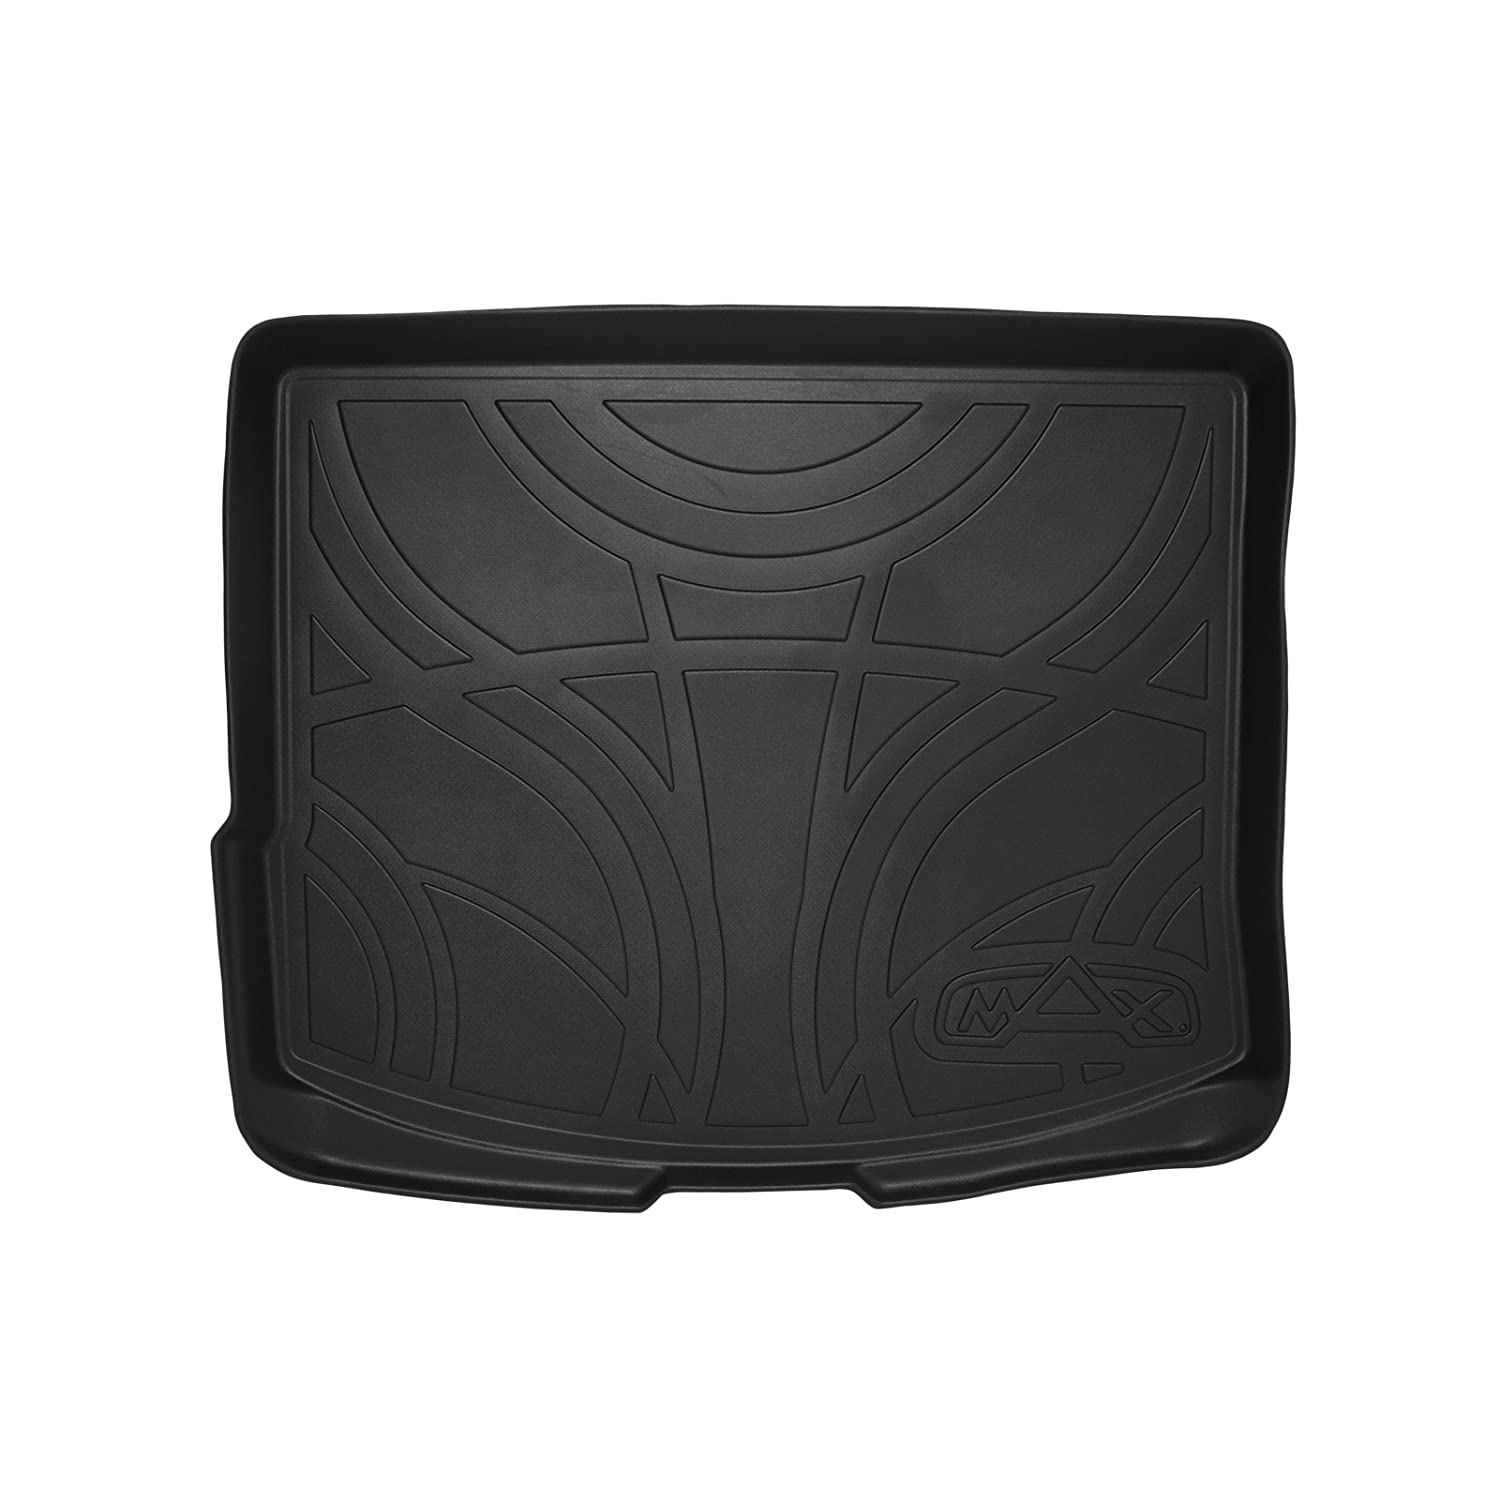 MAXLINER D0115 Tray Cargo Liner for Ford Escape/Lincoln MKC, 2013-2017, Black